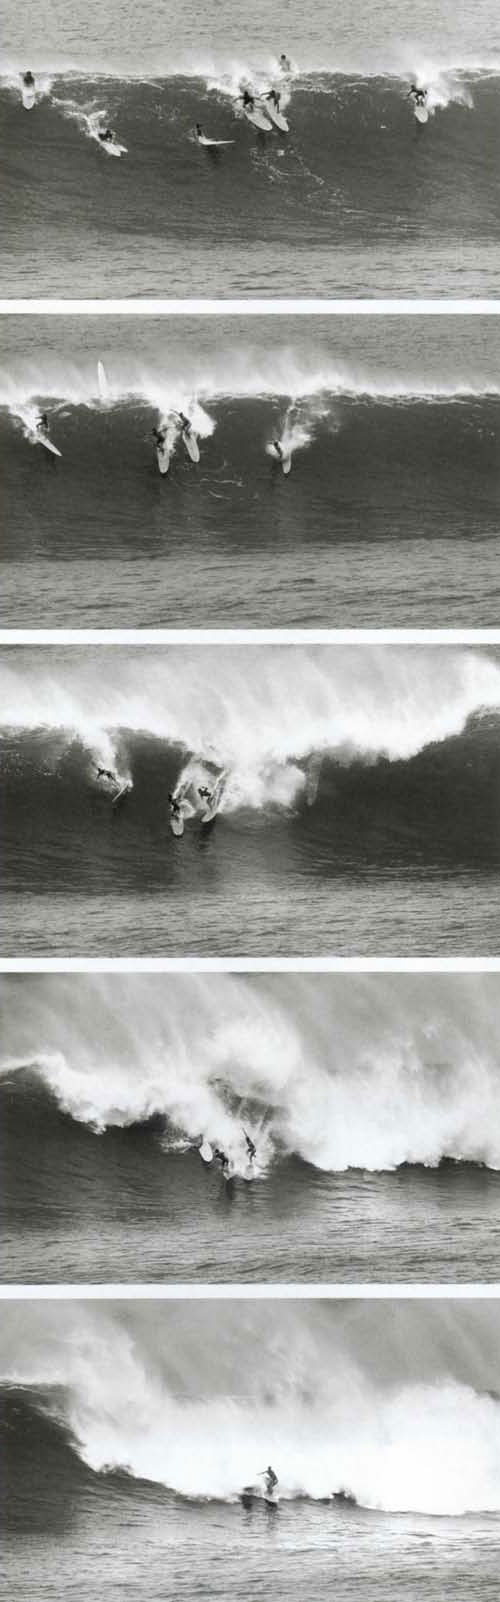 Waimes Bay, November 7, 1957, the first day it was ridden. This is probably one of the first waves. That's Mickey Munoz on the far right, Del Cannon to his left finally making it to the bottom - Stang and Curren were out there too. (Mickey recalls that Seal Beach surfer Harry Schurch might have caught the very first wave ridden that day.) I was driving by the Bay on the way to Sunset and noticed some guys standing there on the point watching it so I pulled over. Pretty soon a few of them paddled out and started catching waves, it was simple as that. I was taking pictures and Bud (Browne) was standing next to me filming. The waves were mostly in the 15'18' range with a couple of twenty footers. In hindsight, it was not that huge, but the psychological hurdle was immense because of the Woody Brown-David Cross incident back in '46.